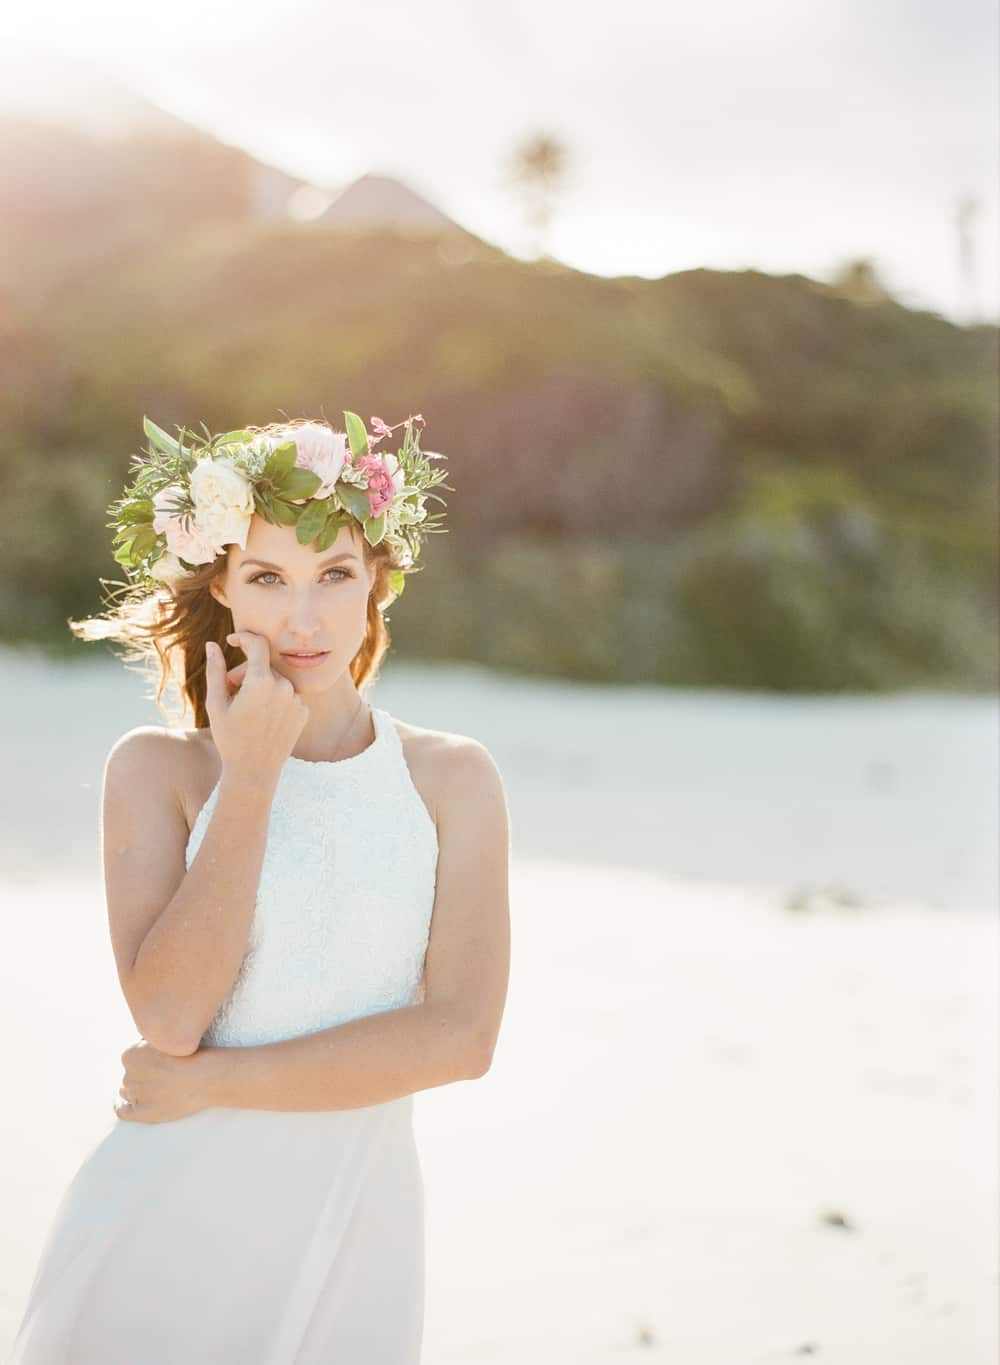 8-emily-katharine-cape-town-wedding-photography-57